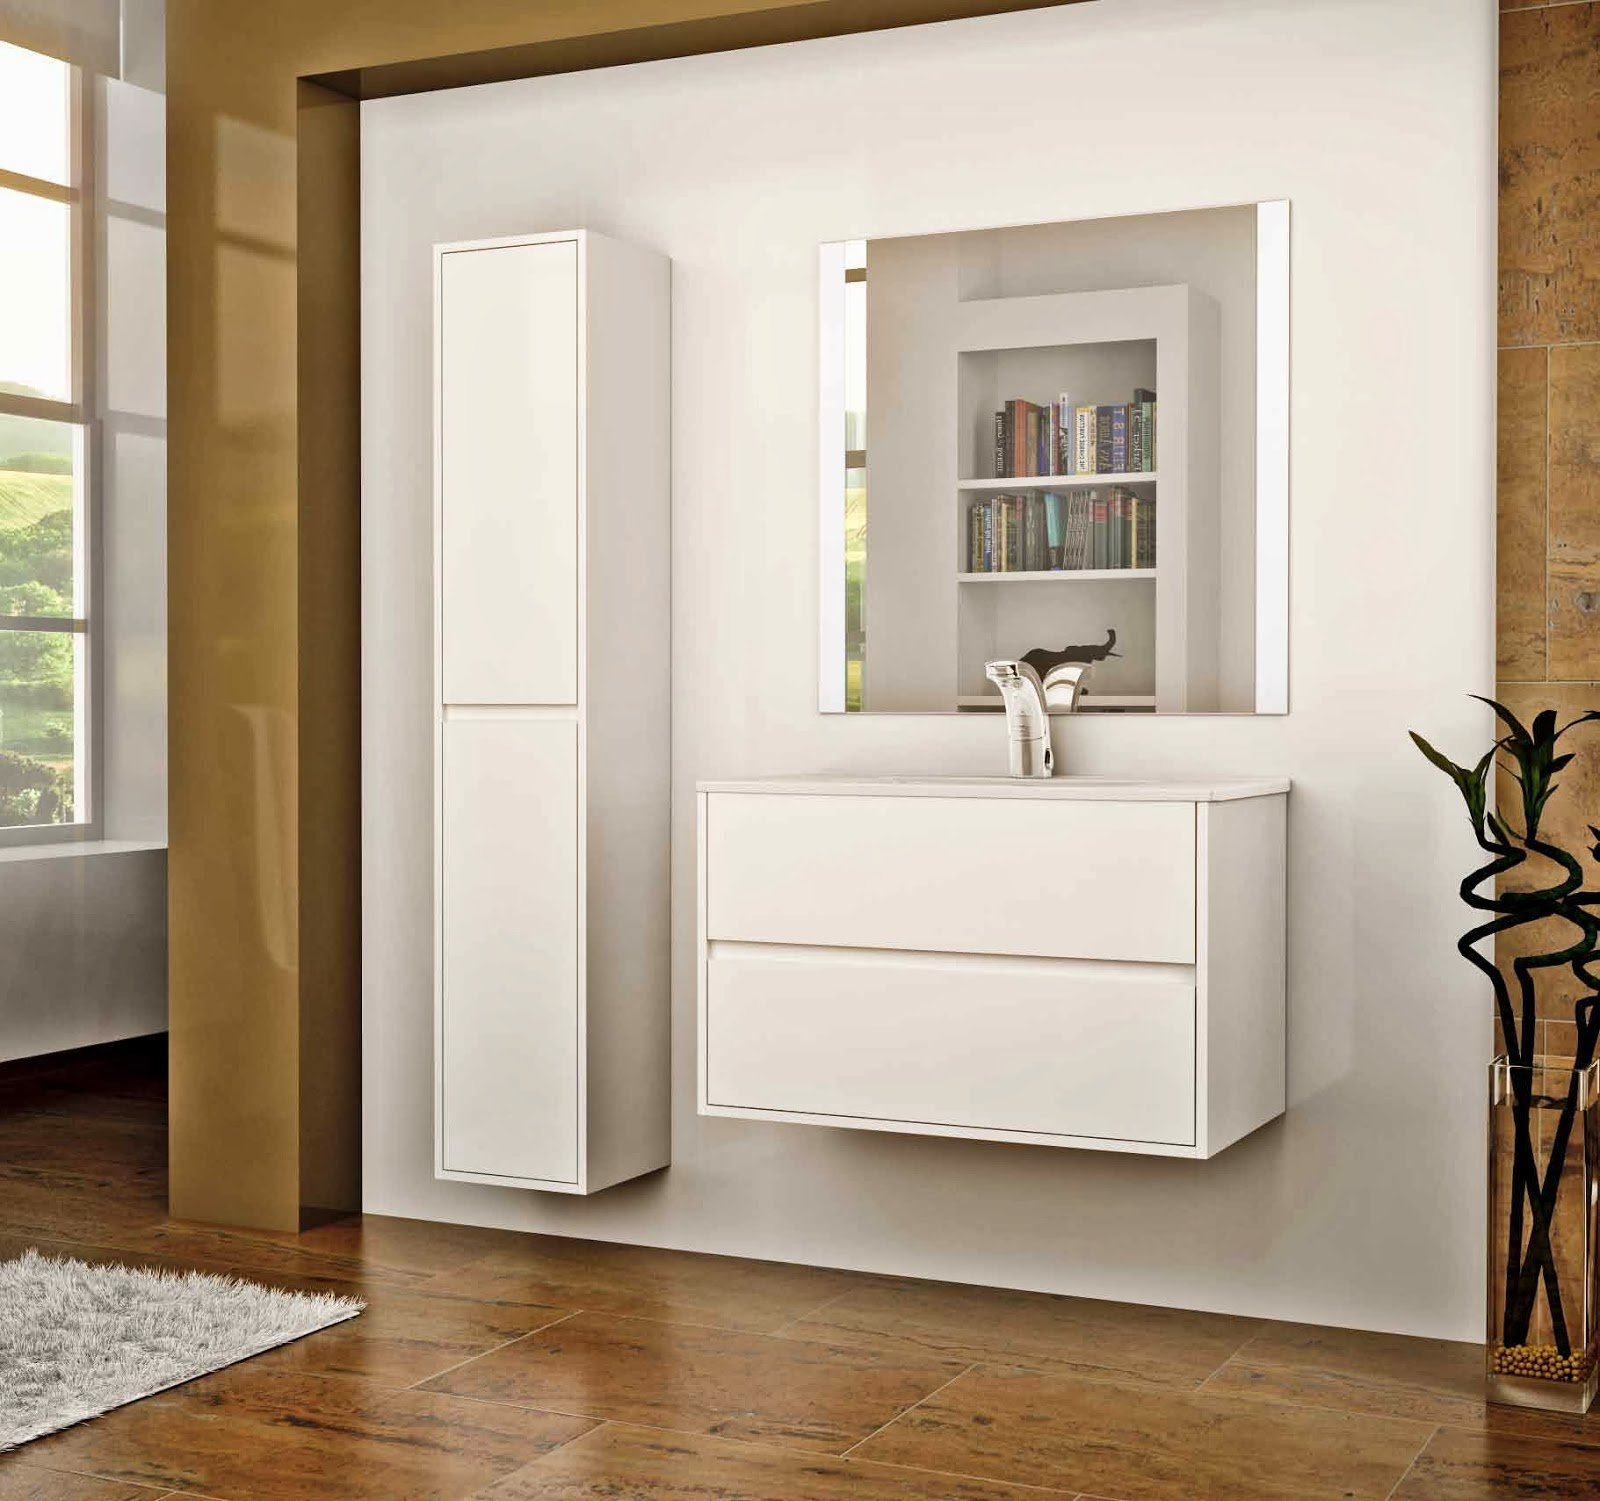 Mueble ba o gris perla for Color de pared para muebles blancos